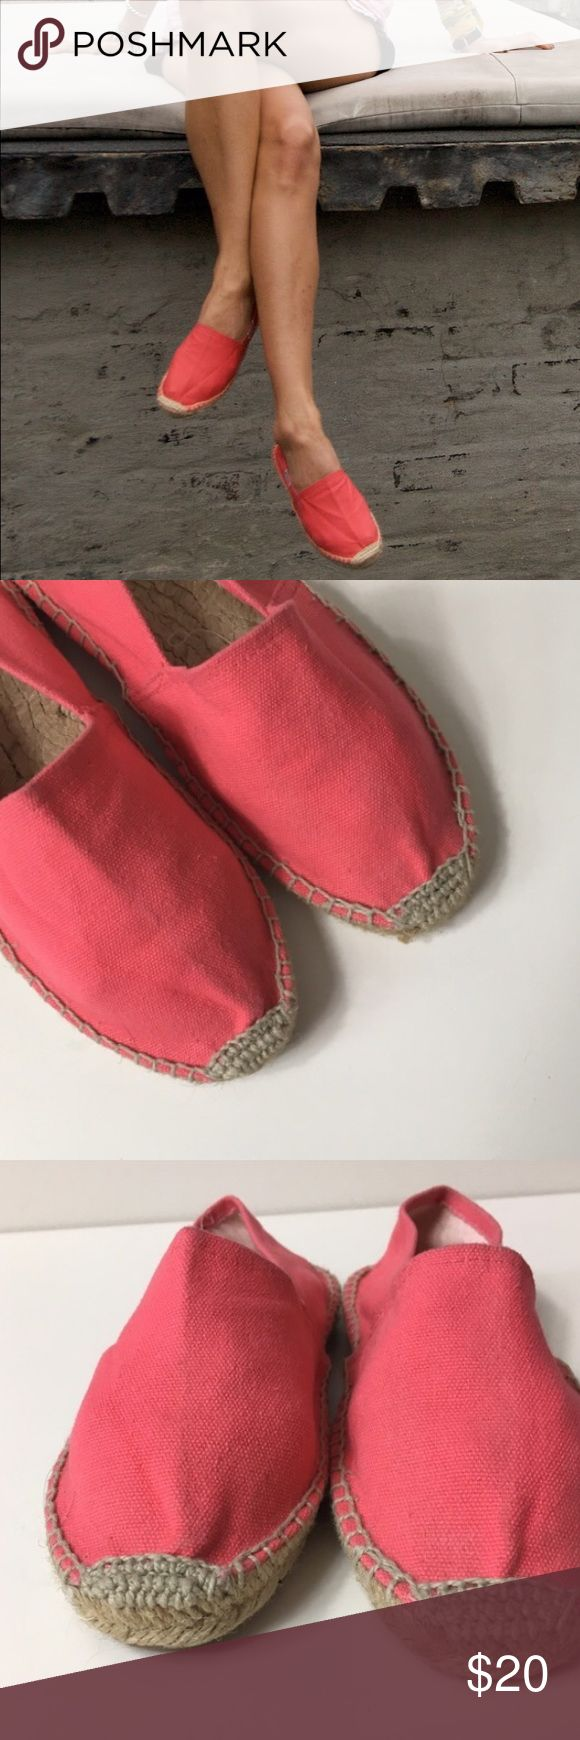 Soludos for j. Crew watermelon pink espadrilles Soludos for j. Crew watermelon pink espadrilles Soludos Shoes Espadrilles